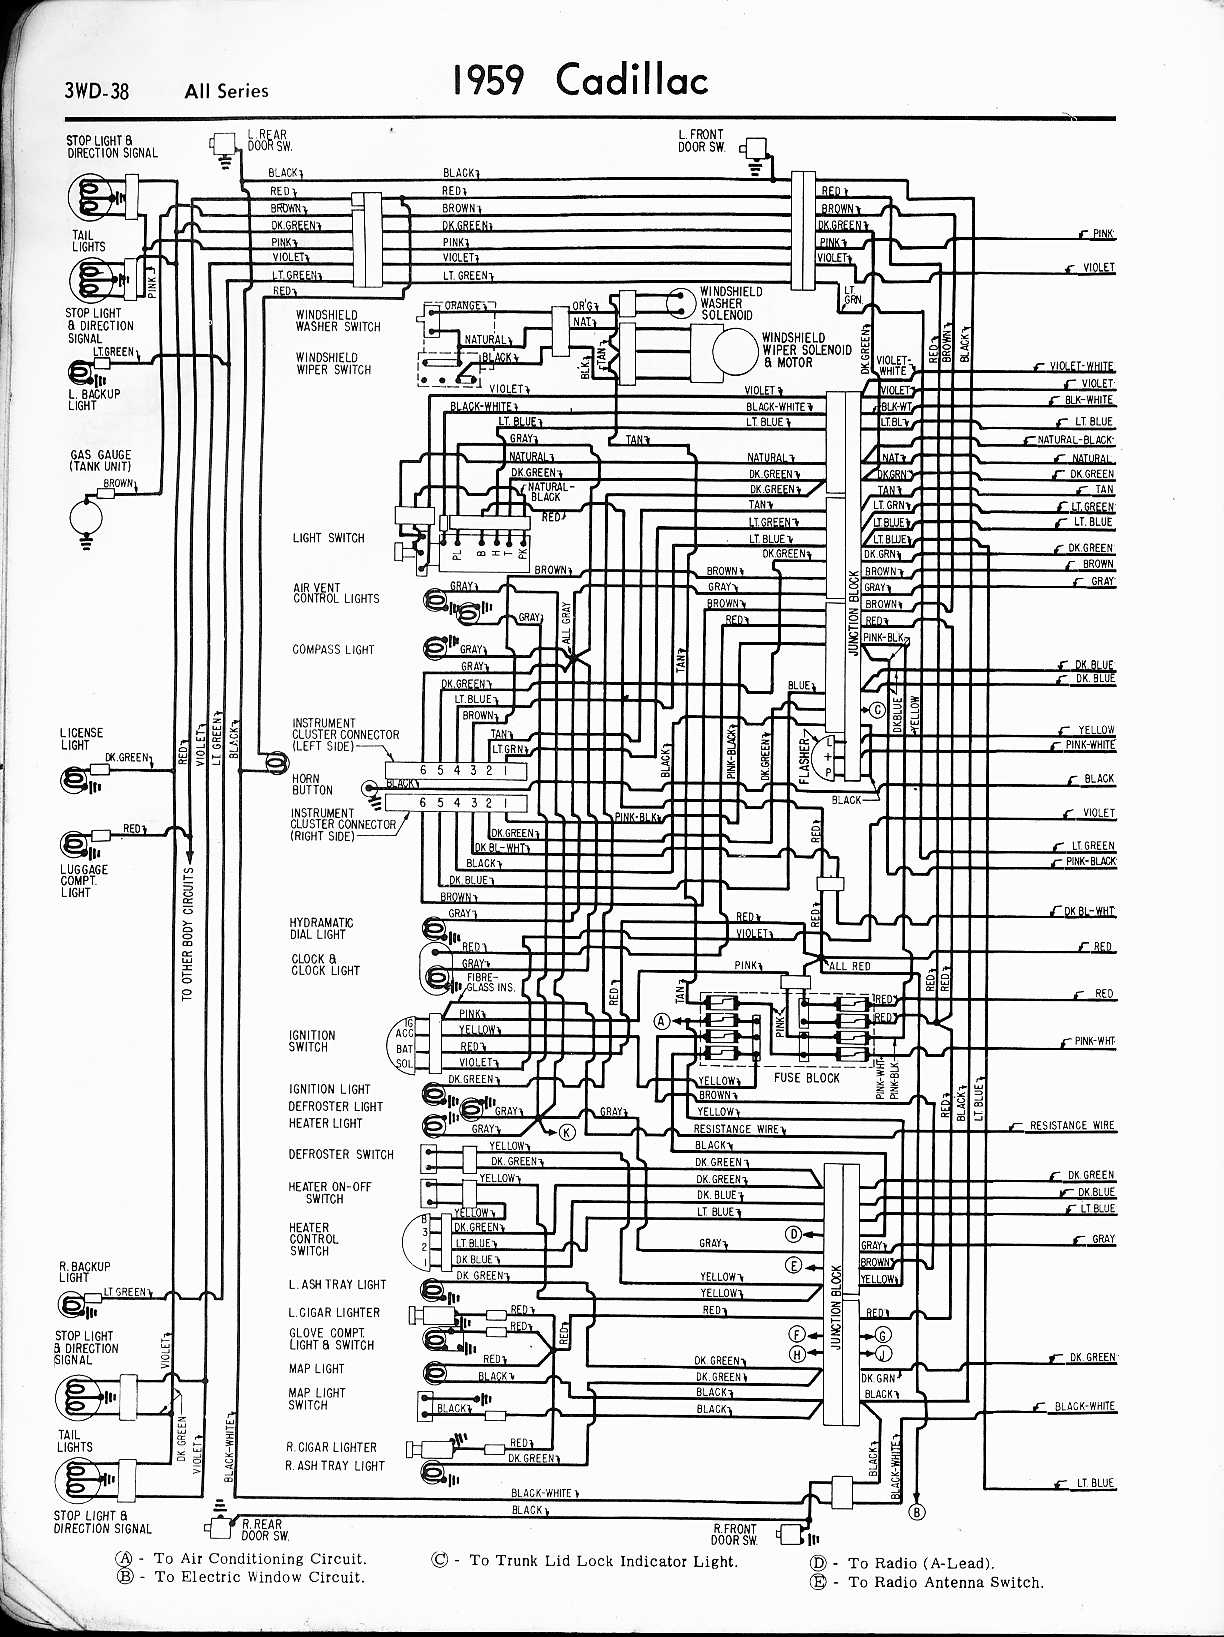 Trunk Wiring Schematics on piping schematics, plumbing schematics, transmission schematics, design schematics, computer schematics, tube amp schematics, circuit schematics, transformer schematics, ductwork schematics, ecu schematics, wire schematics, amplifier schematics, electrical schematics, engine schematics, ford diagrams schematics, electronics schematics, generator schematics, engineering schematics, motor schematics, ignition schematics,